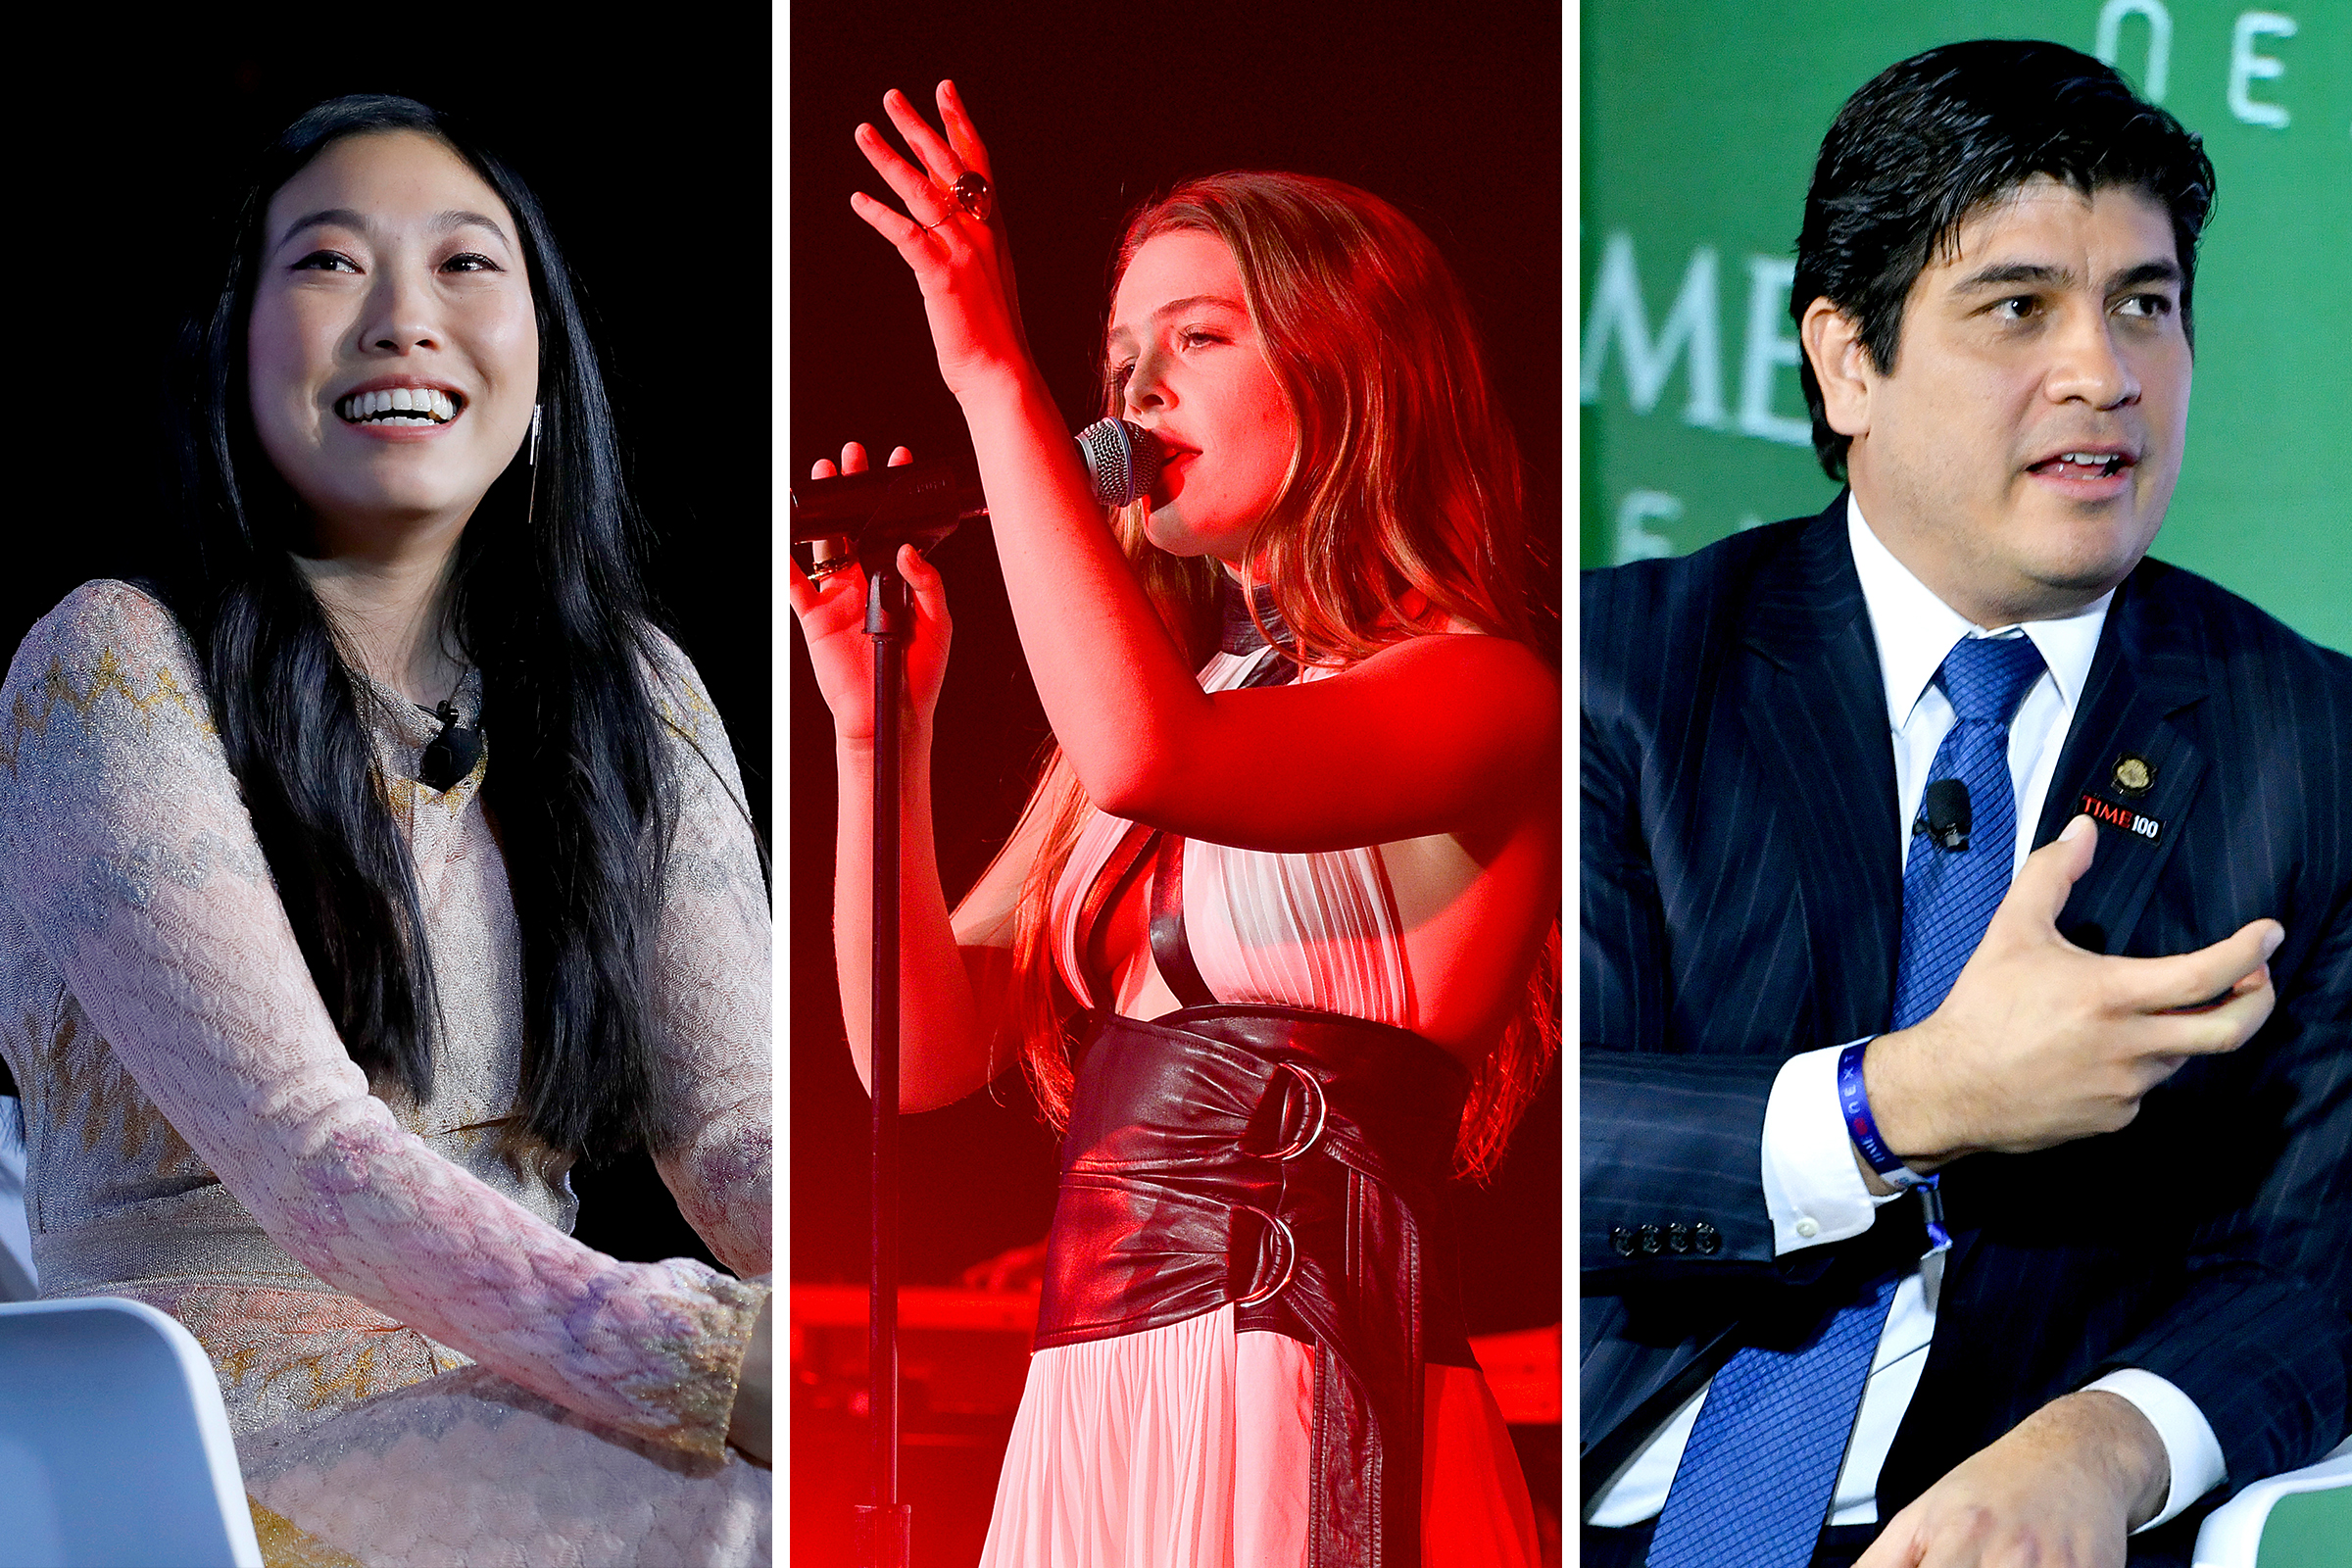 Awkwafina, Maggie Rogers, and President of Costa Rica Carlos Alvarado Quesada at the TIME 100 Next event at Pier 17 in New York on Nov. 14, 2019.